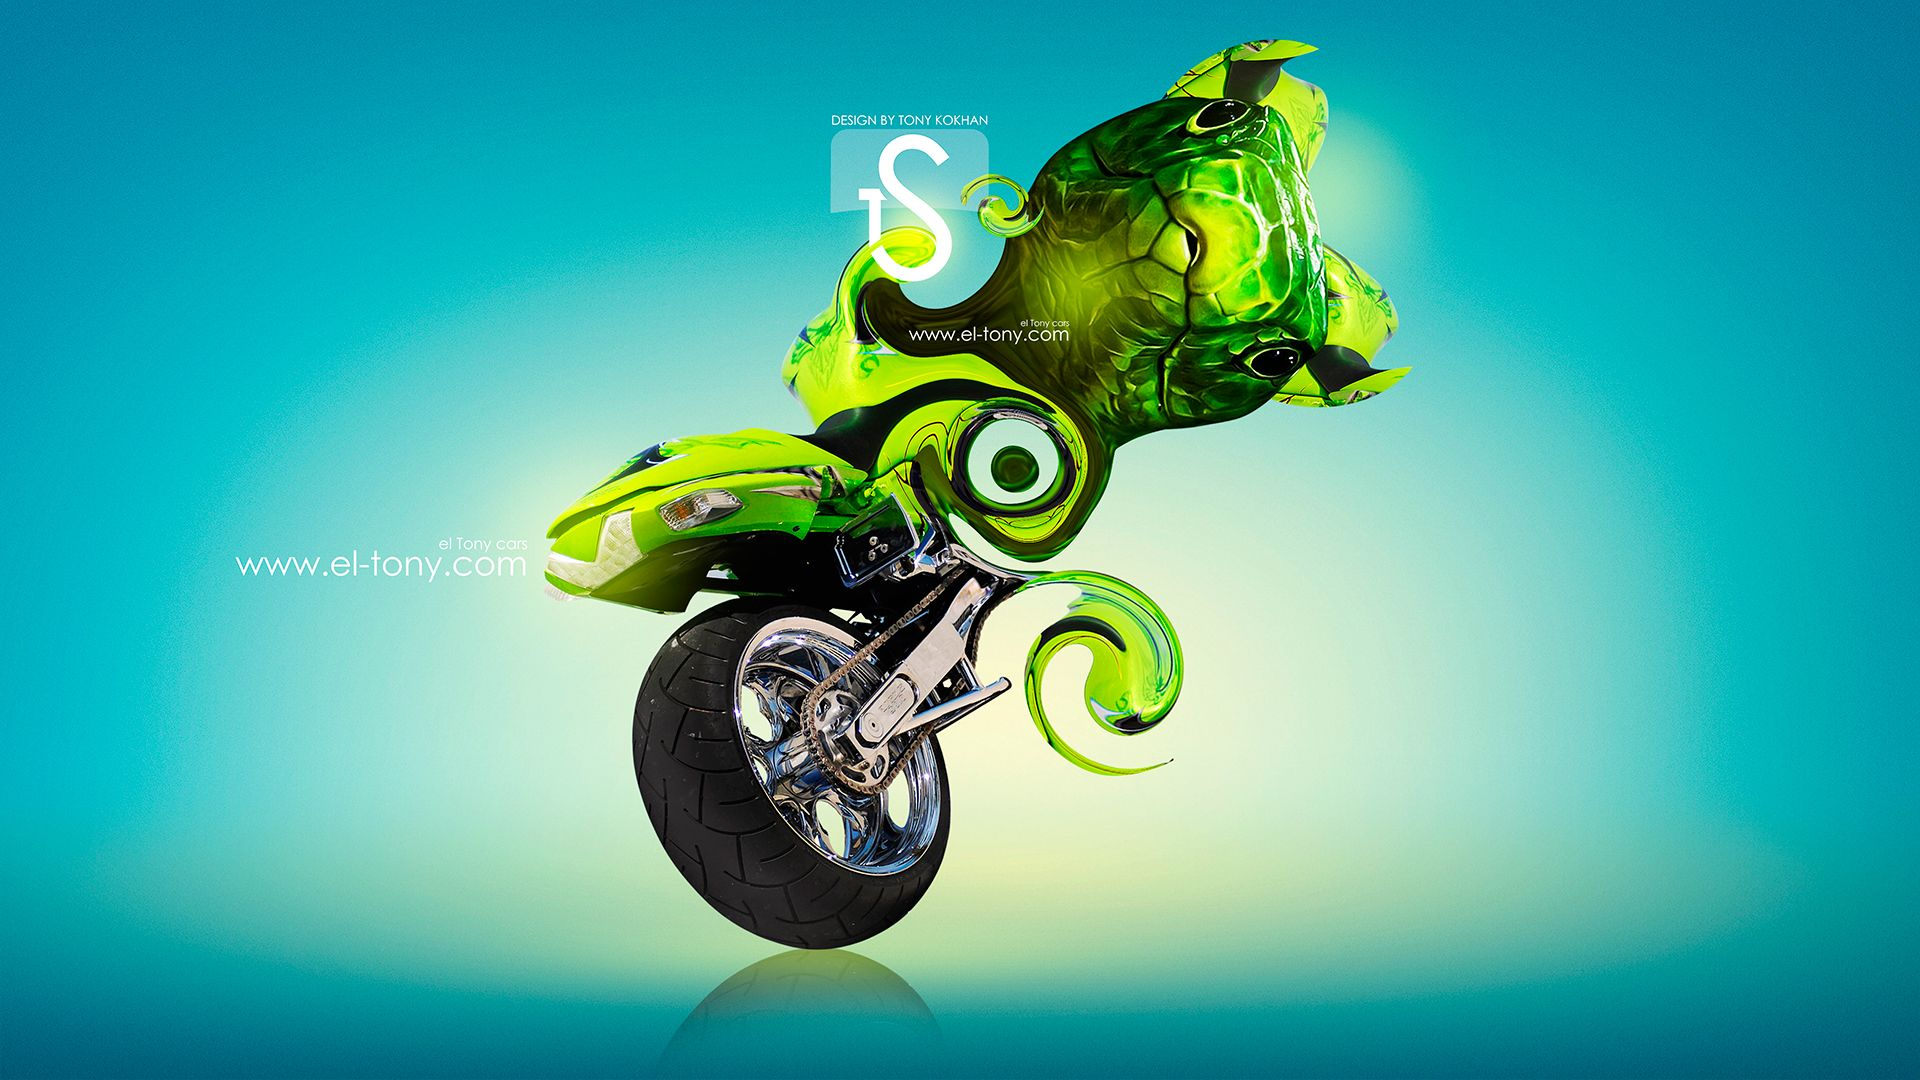 Exceptional Moto Green Snake Fantasy Plastic 2013 HD Wallpapers